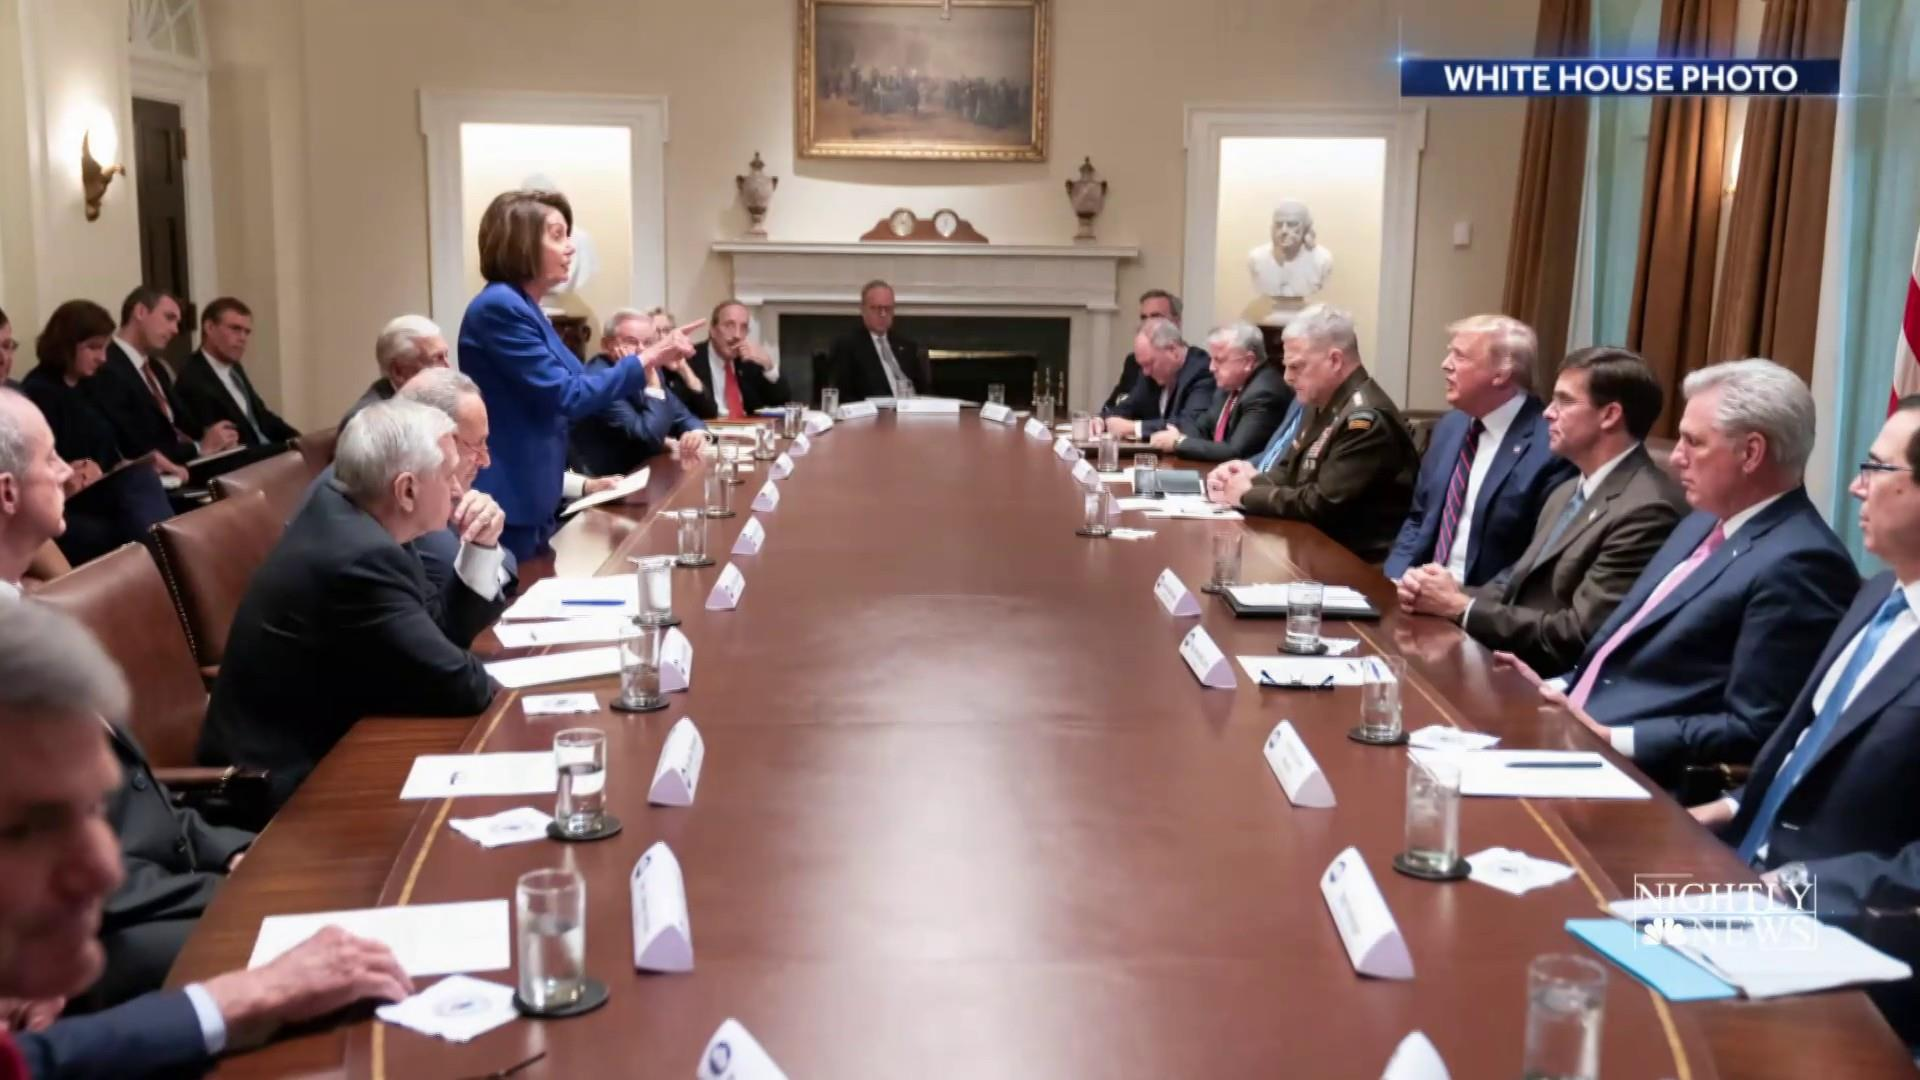 Photo of Pelosi meeting with Trump becomes new powerful symbol of their power struggle